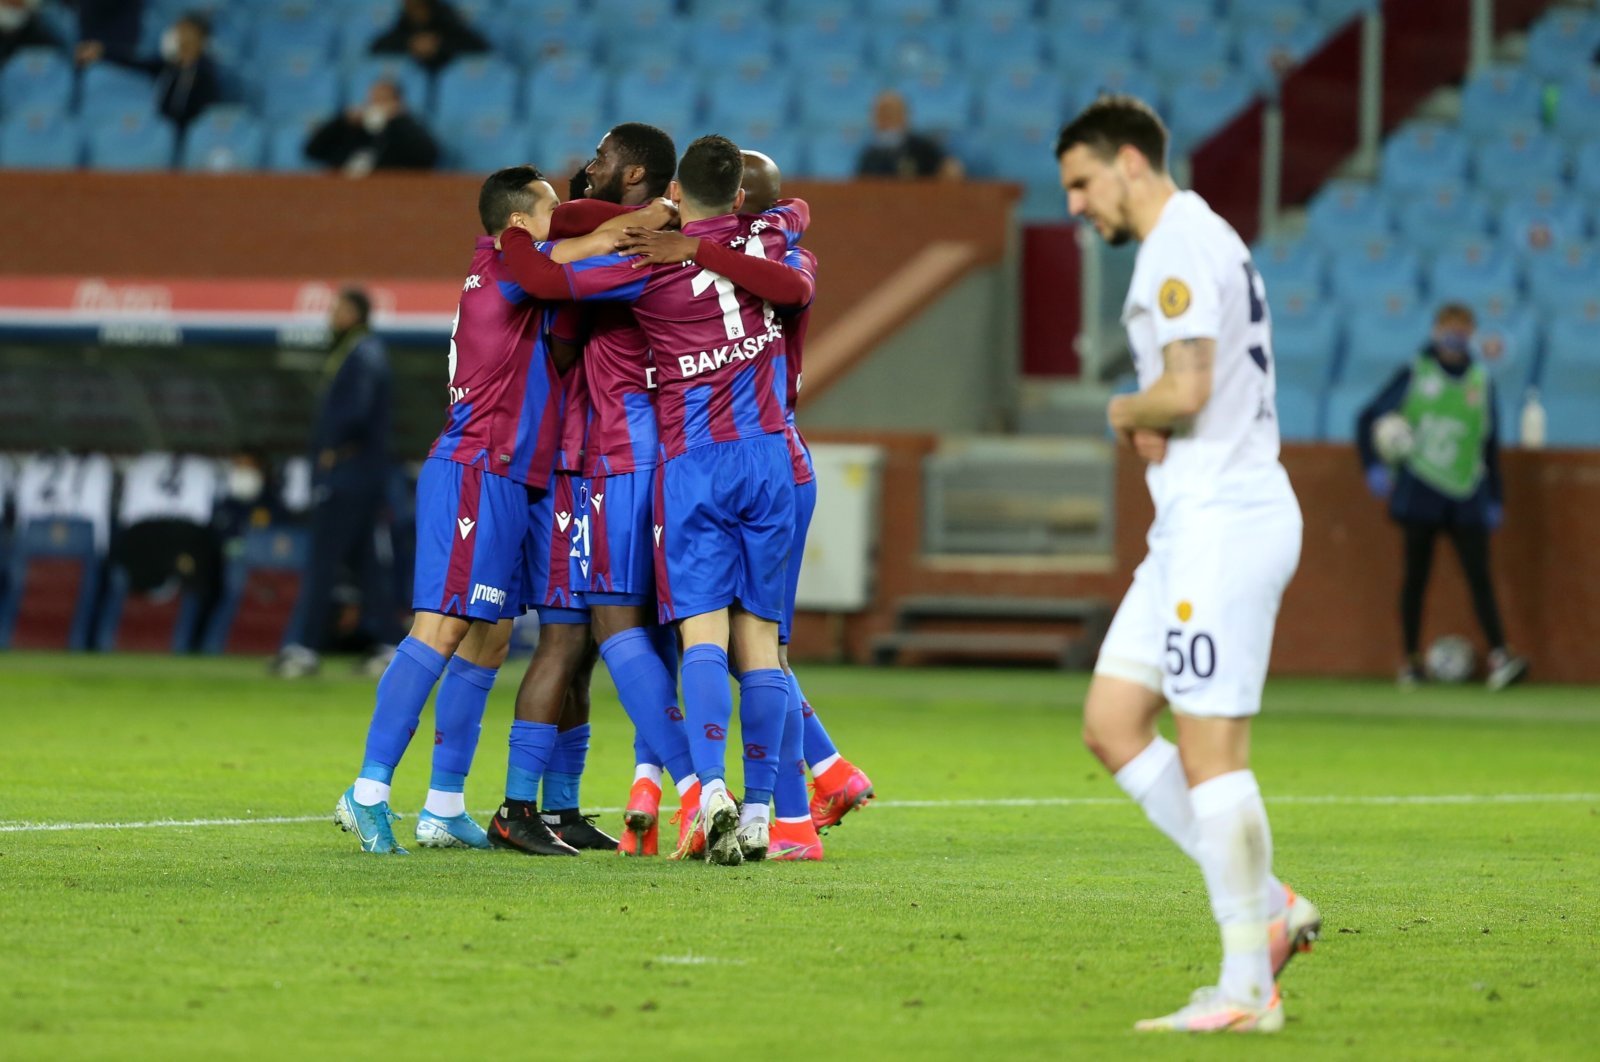 Trabzonspor players celebrate a goal against MKE Ankaragücü during a Turkish Süper Lig match in Trabzon, northern Turkey, March 20, 2021. (AA Photo)